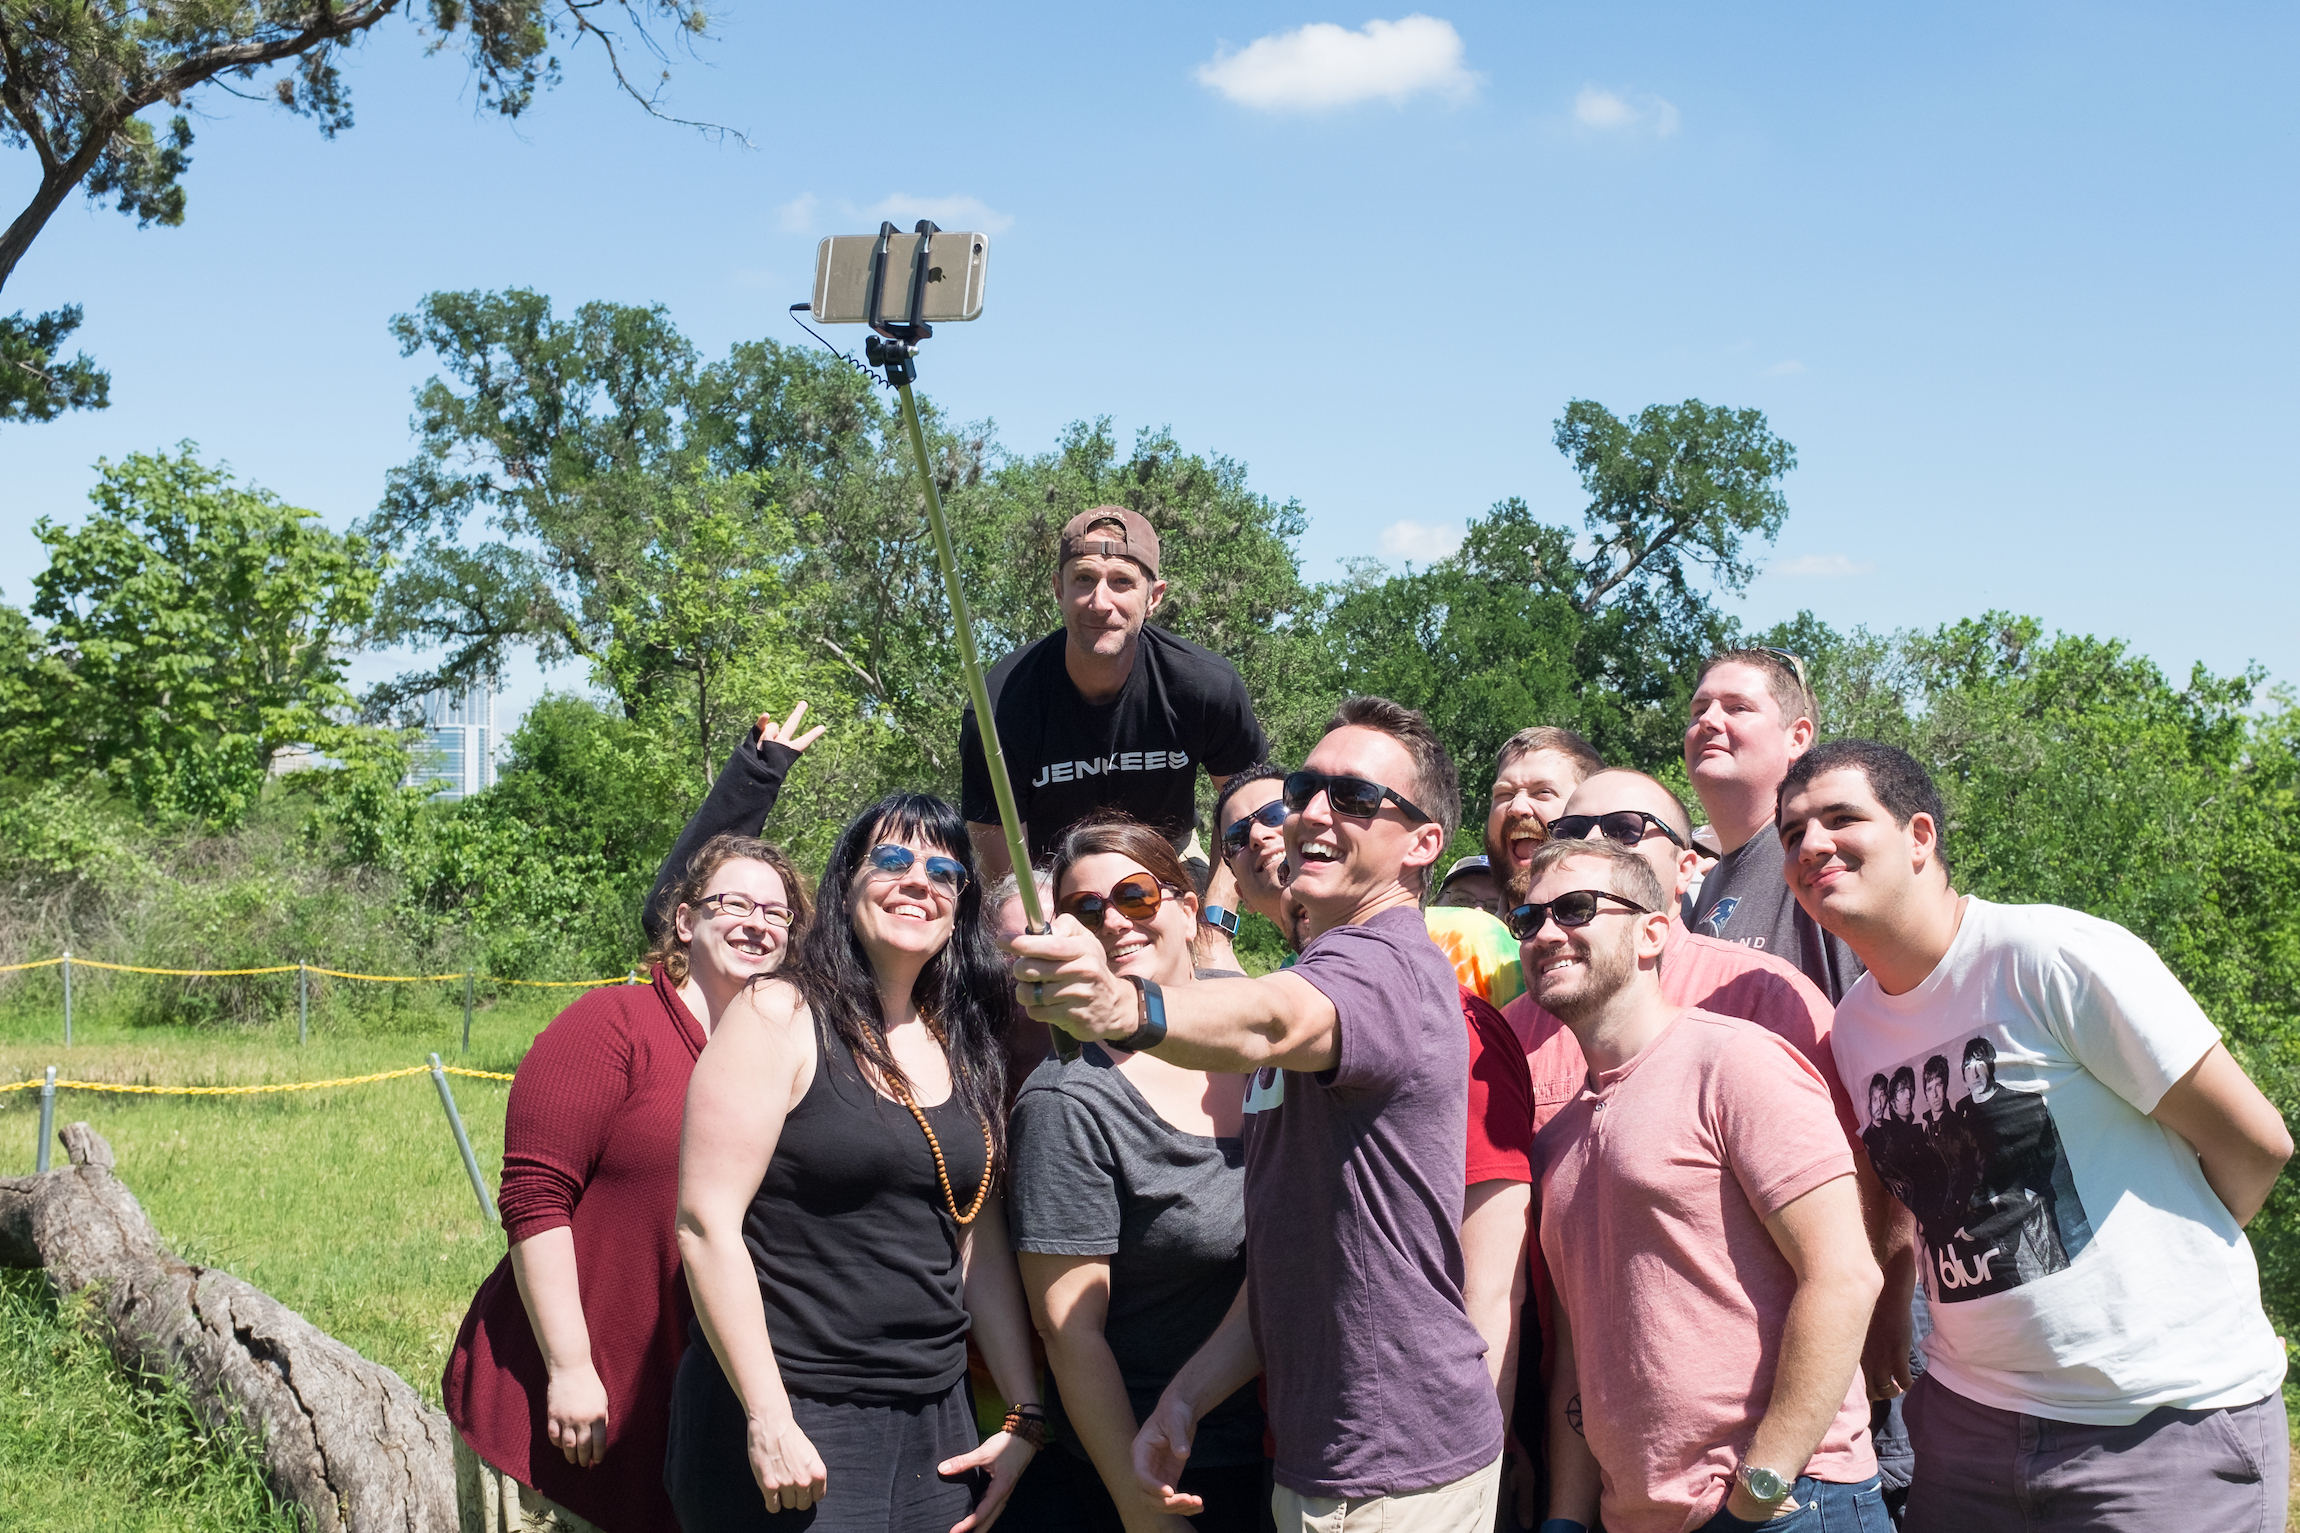 Two Happiness teams take a selfie after our barbecue in Austin